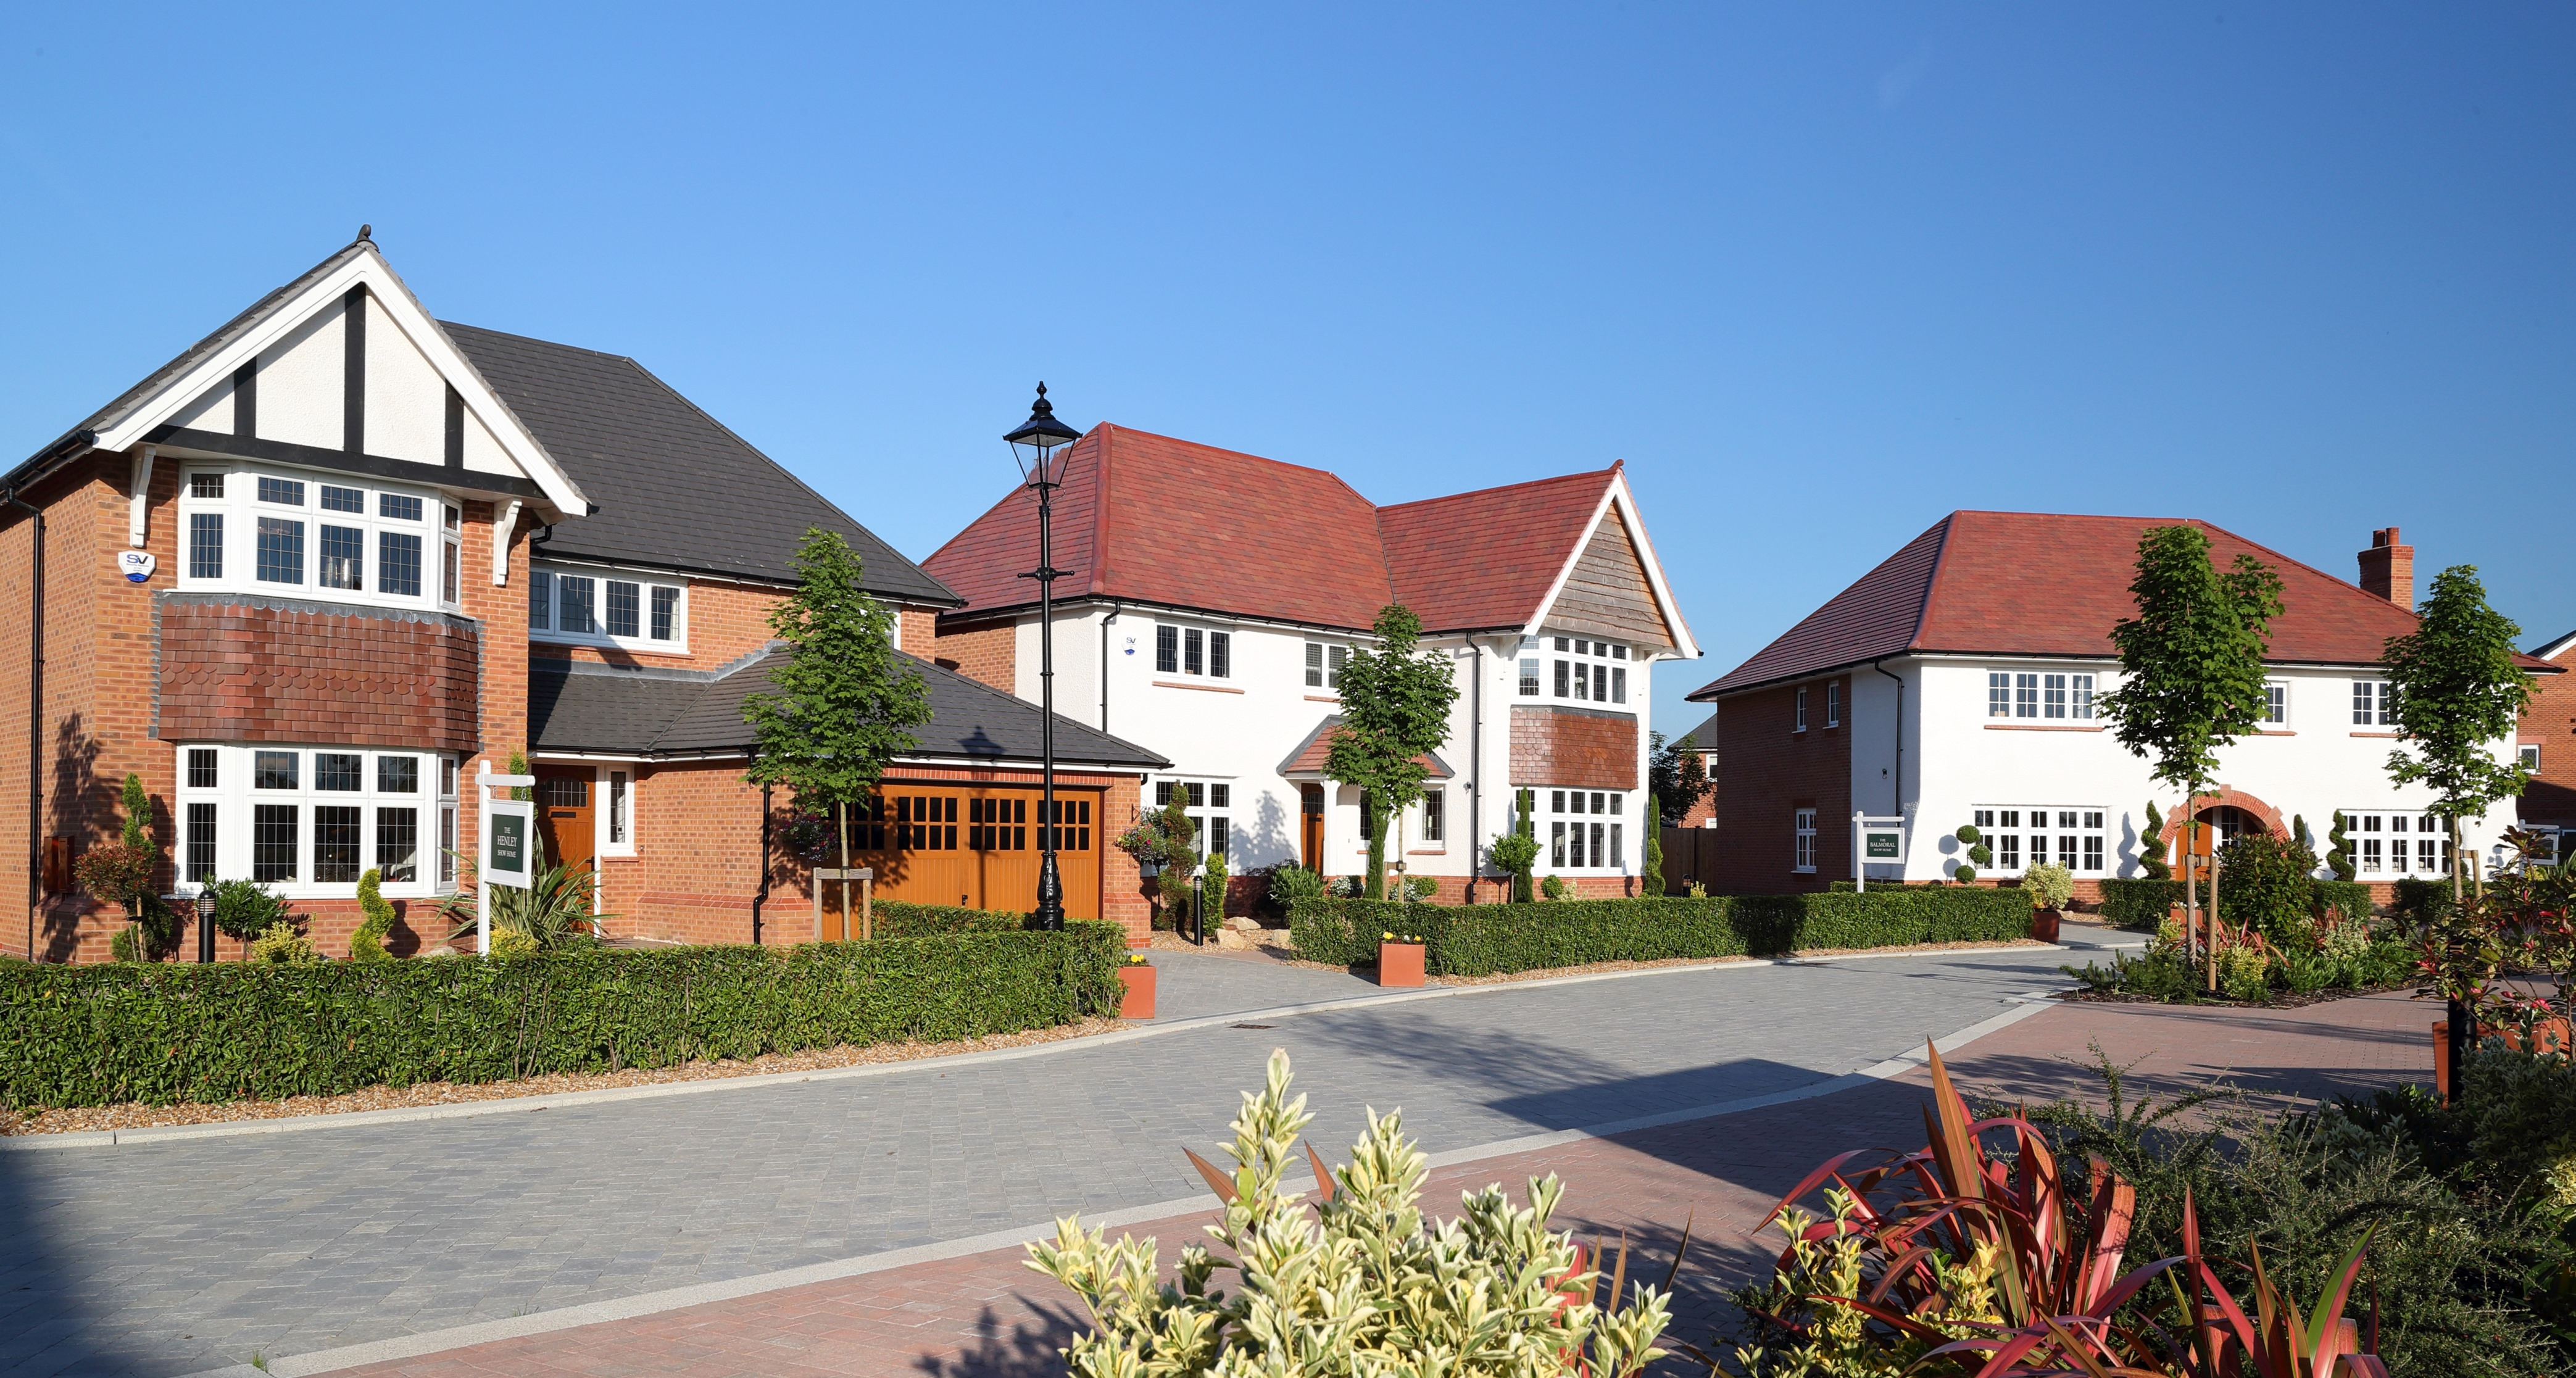 Redrow's £360m homes boost across four North West sites